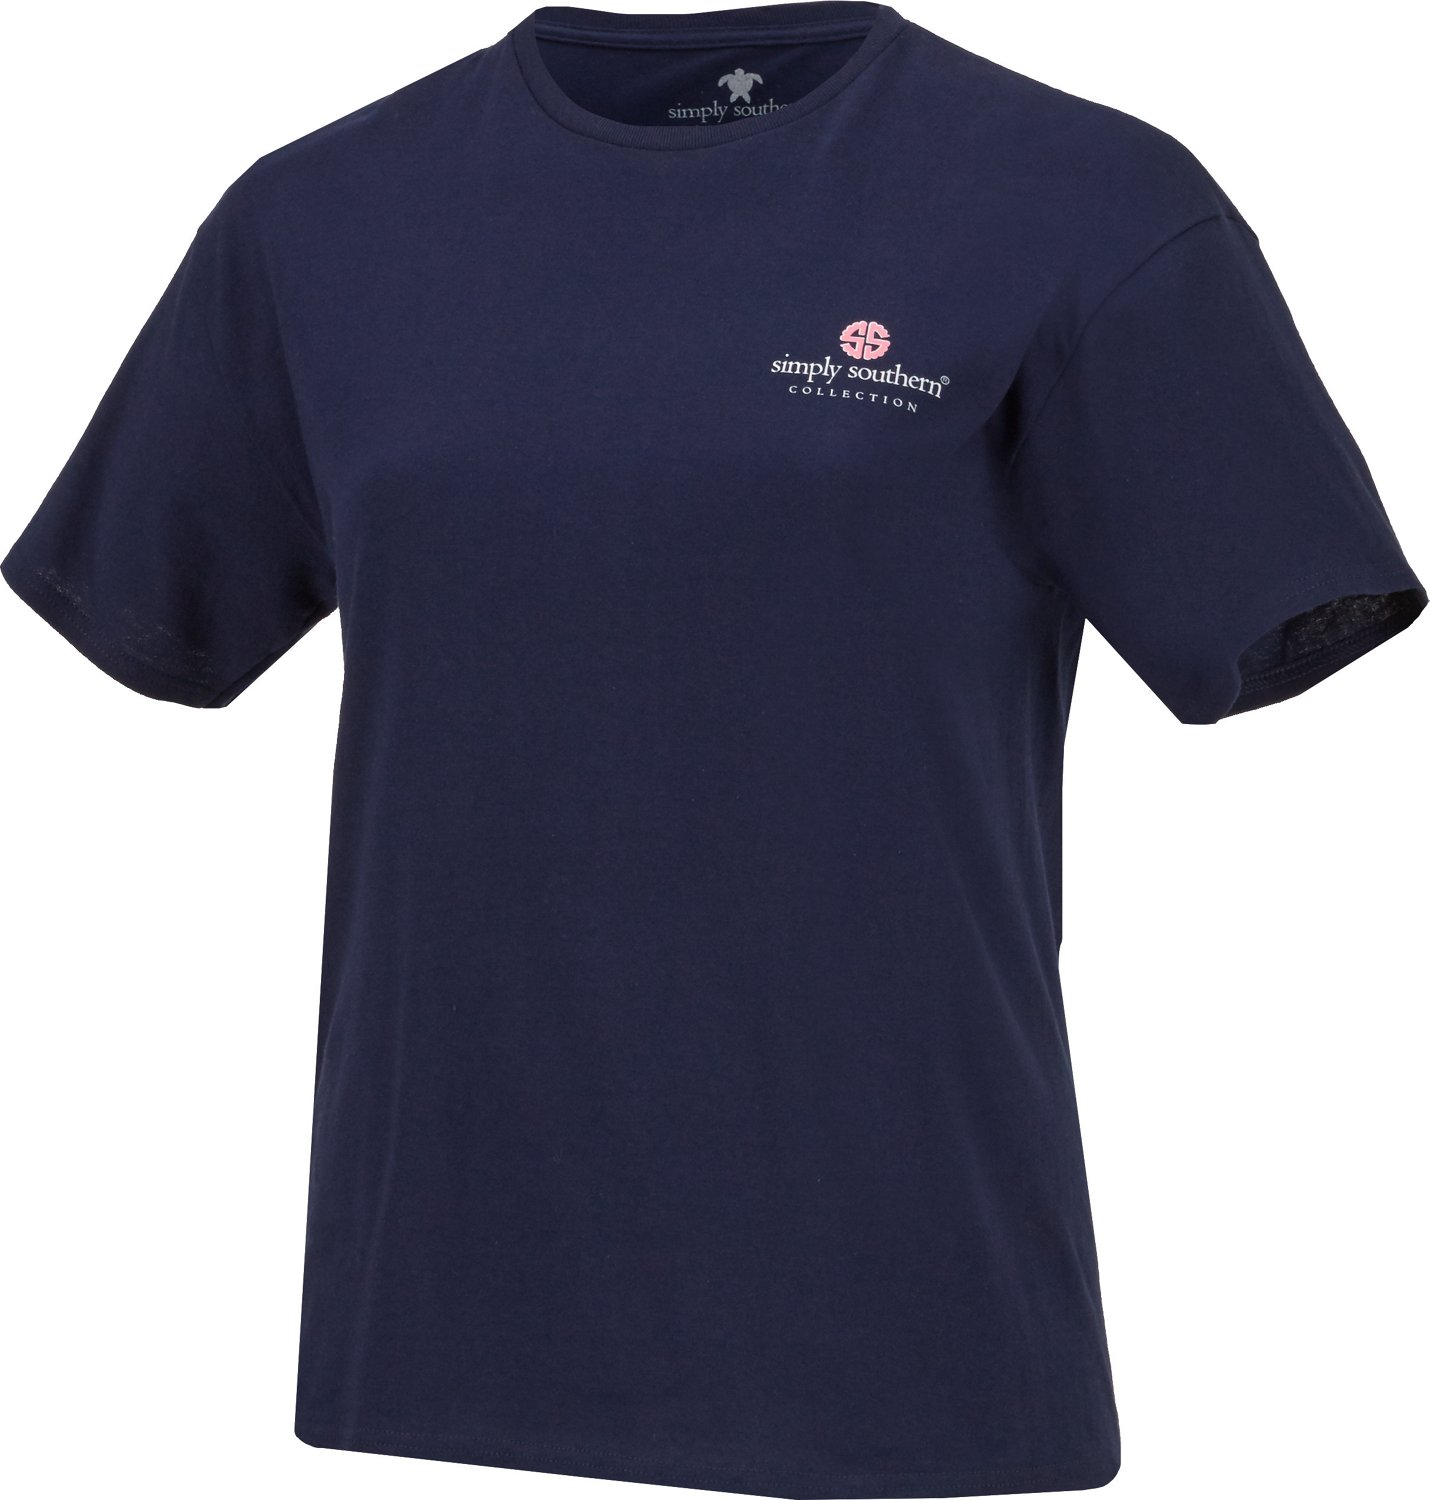 Simply Southern Women's Make Some Waves T-shirt - view number 1